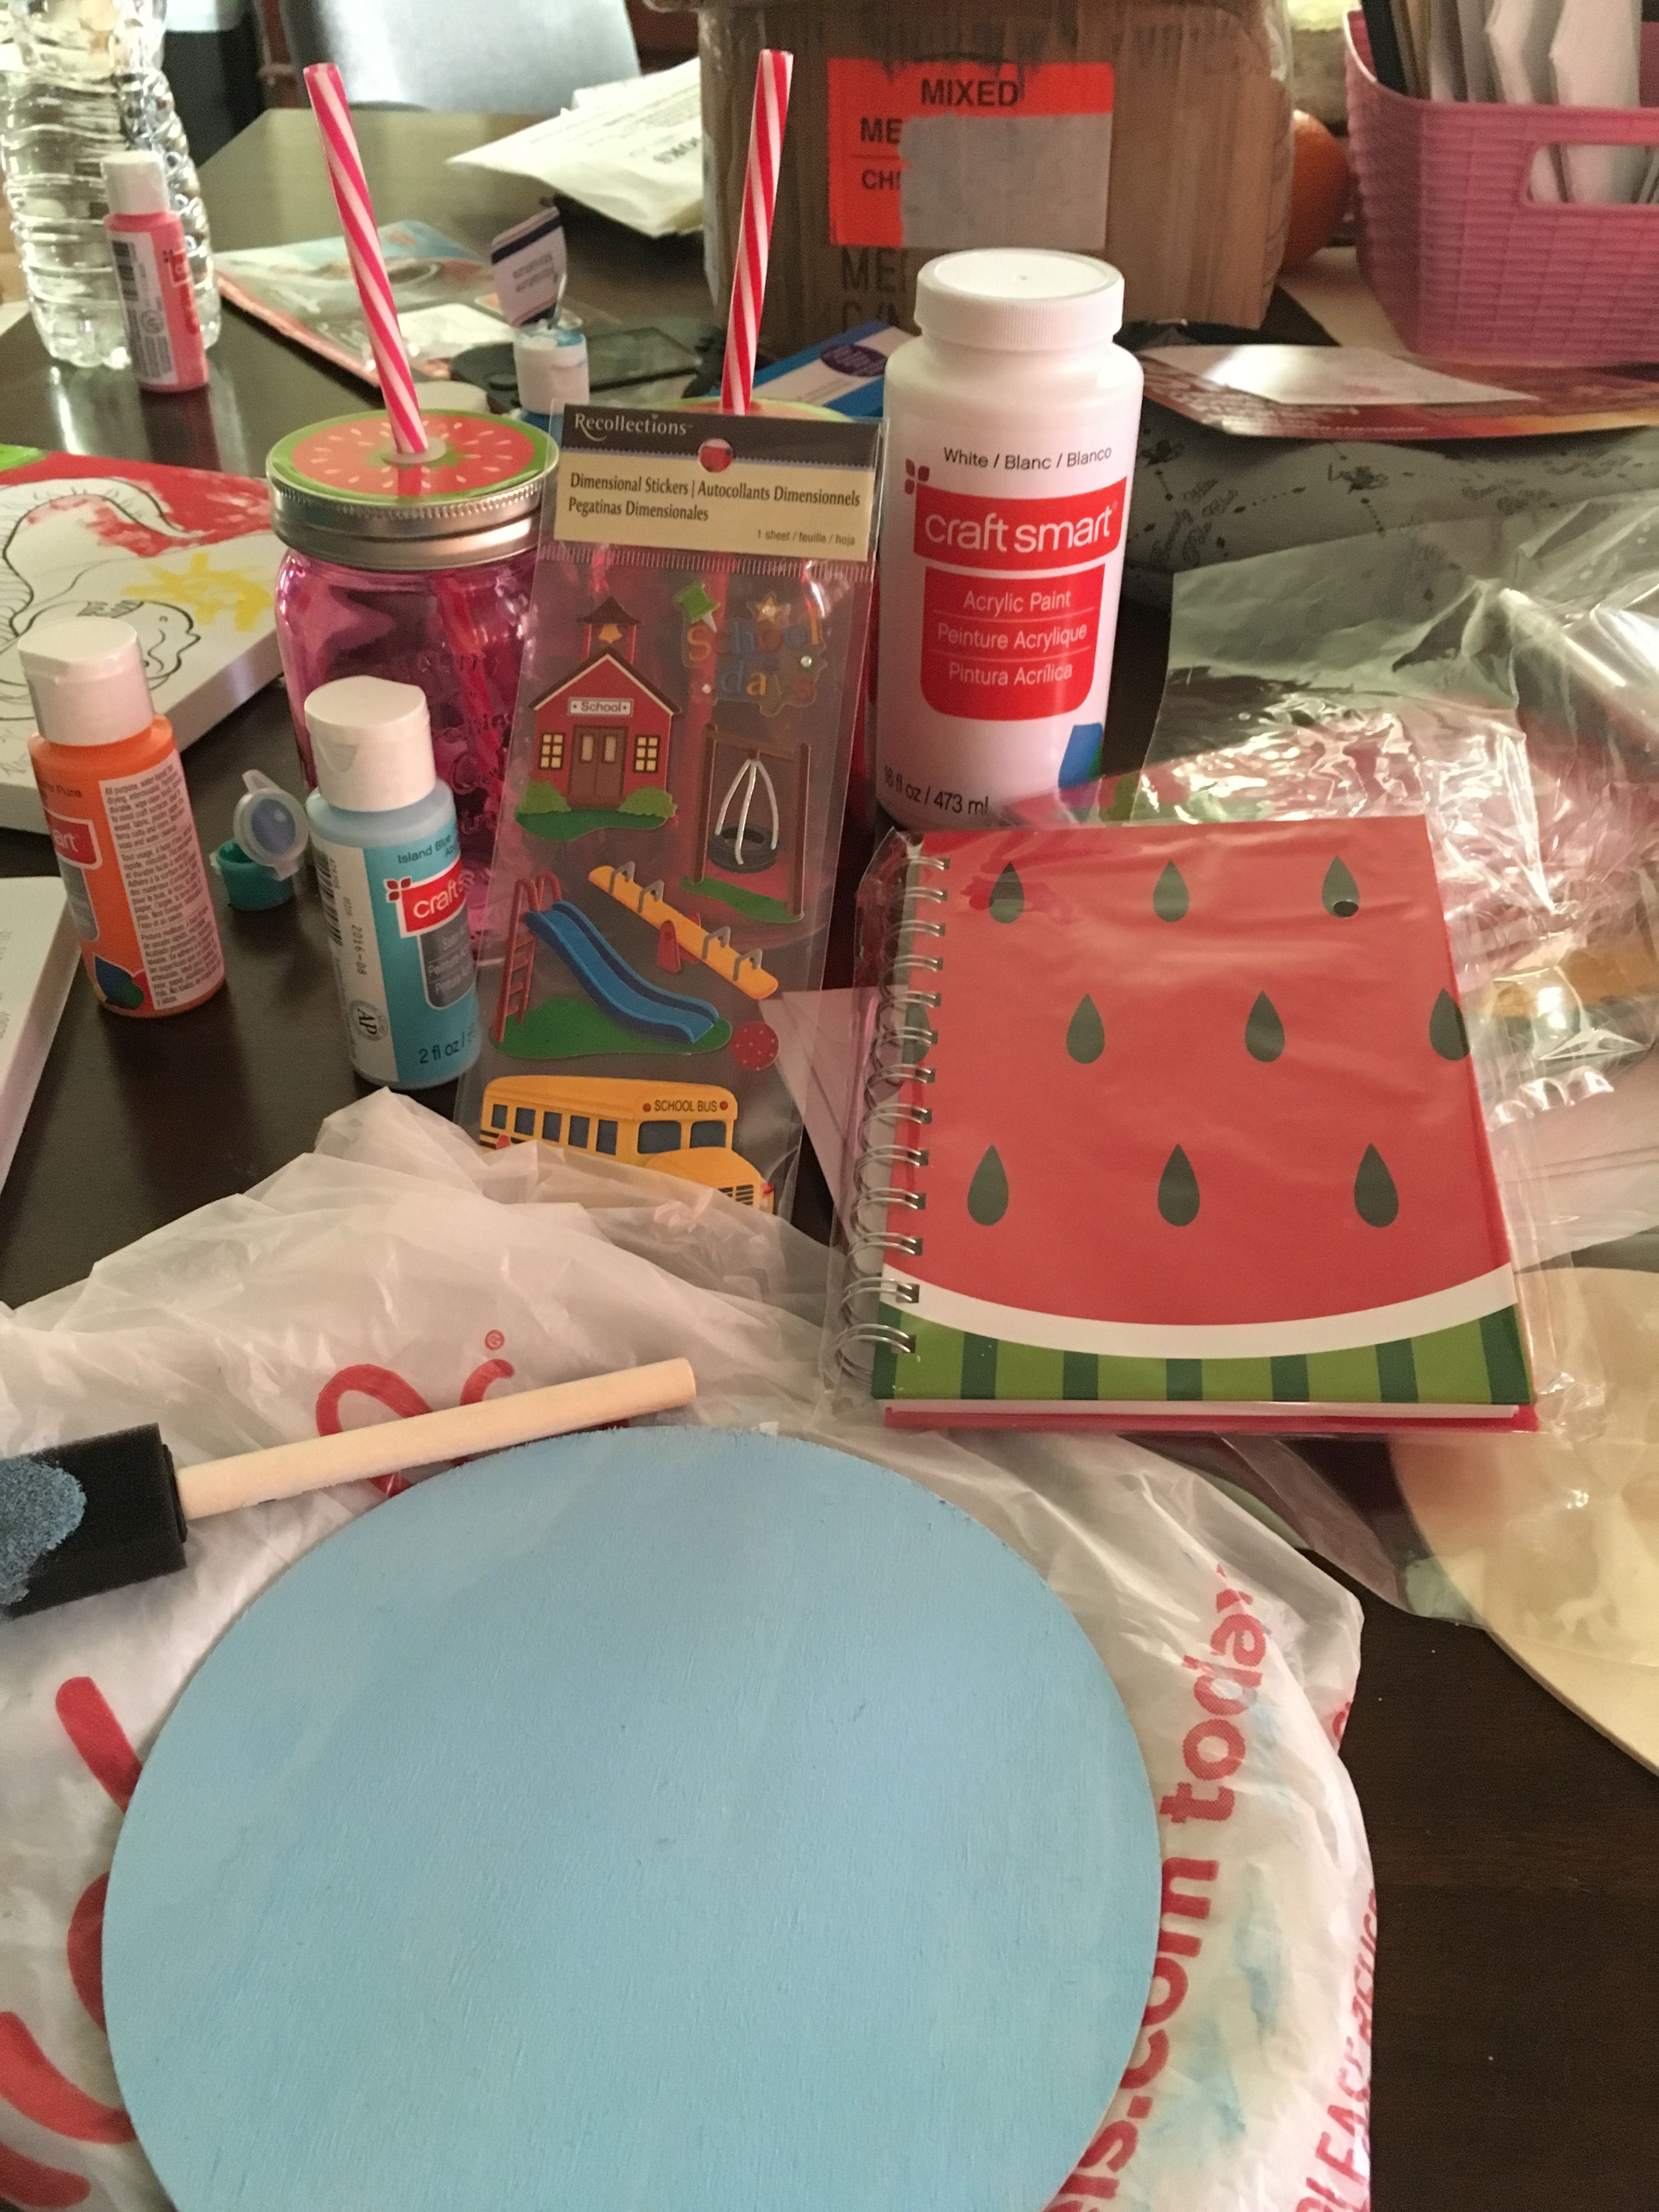 Diy end of year teacheroffice staff gifts with images